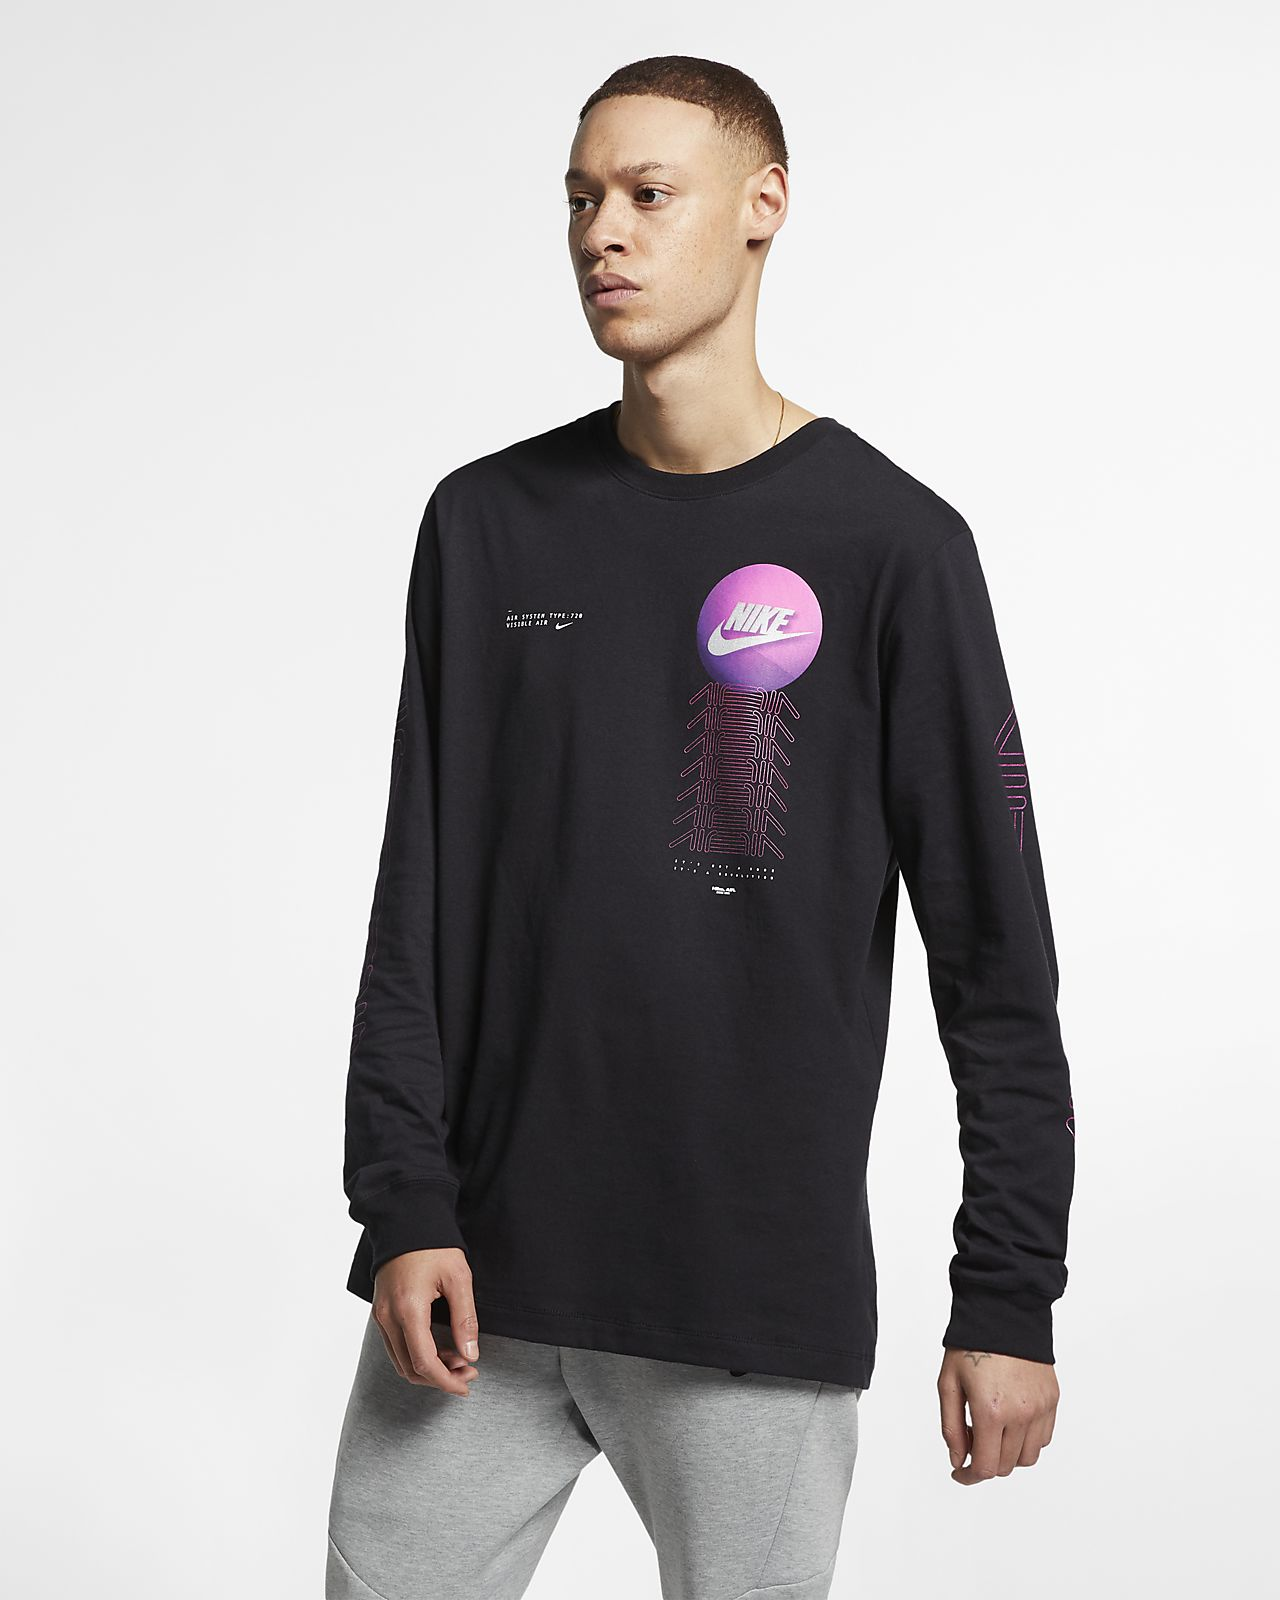 04a7e2db56ab7 Nike Sportswear Men s Long-Sleeve T-Shirt. Nike.com